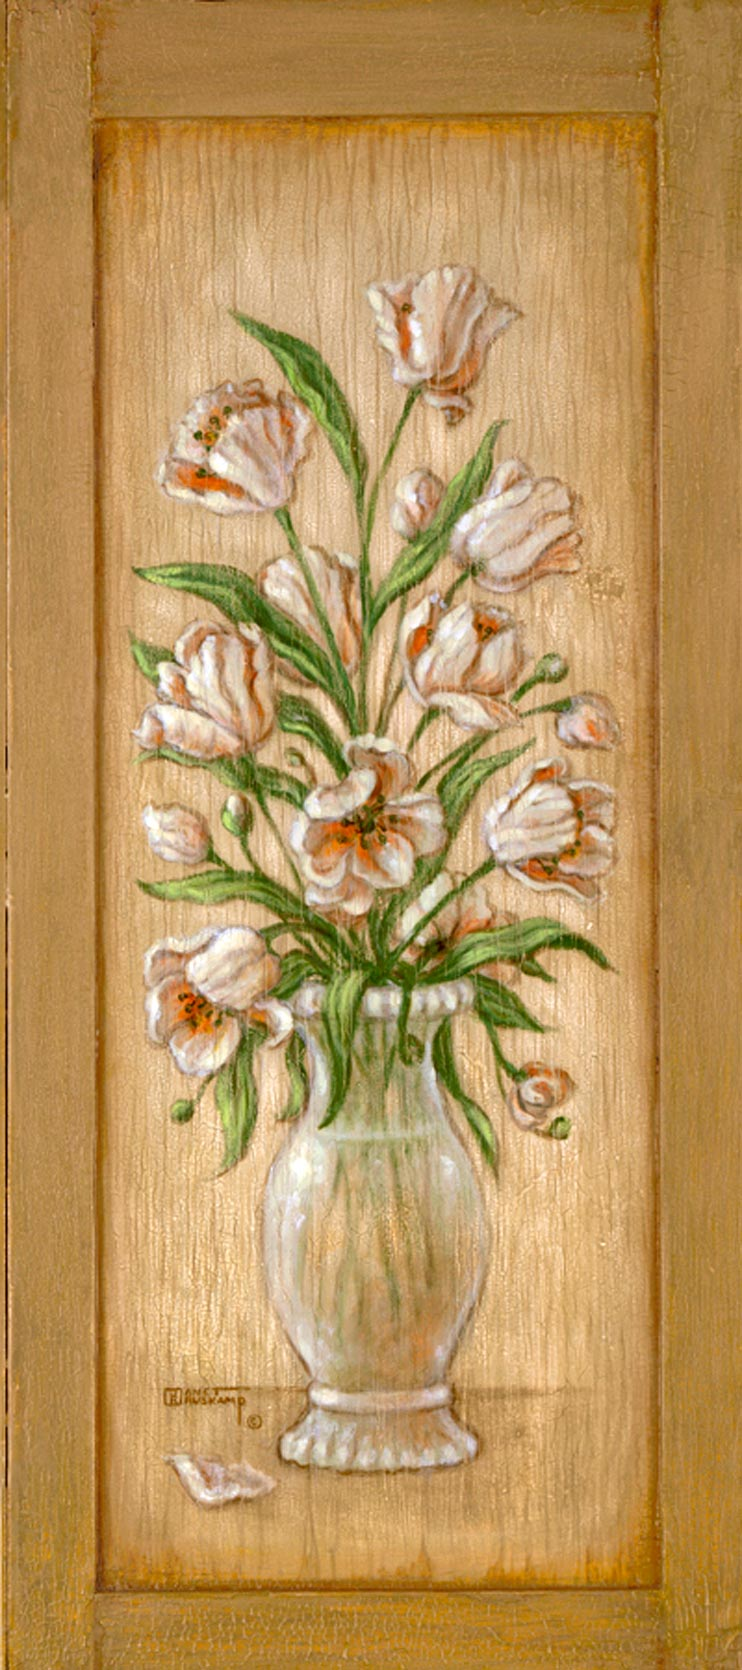 Janet Kruskamp's Paintings - Tulip Cupboard, an original oil painting on an antique cupboard of an elegant vase holding an arrangement of tulips. One of the Gardens and Florals Gallery of Original Oil Paintings and  original paintings by Janet Kruskamp